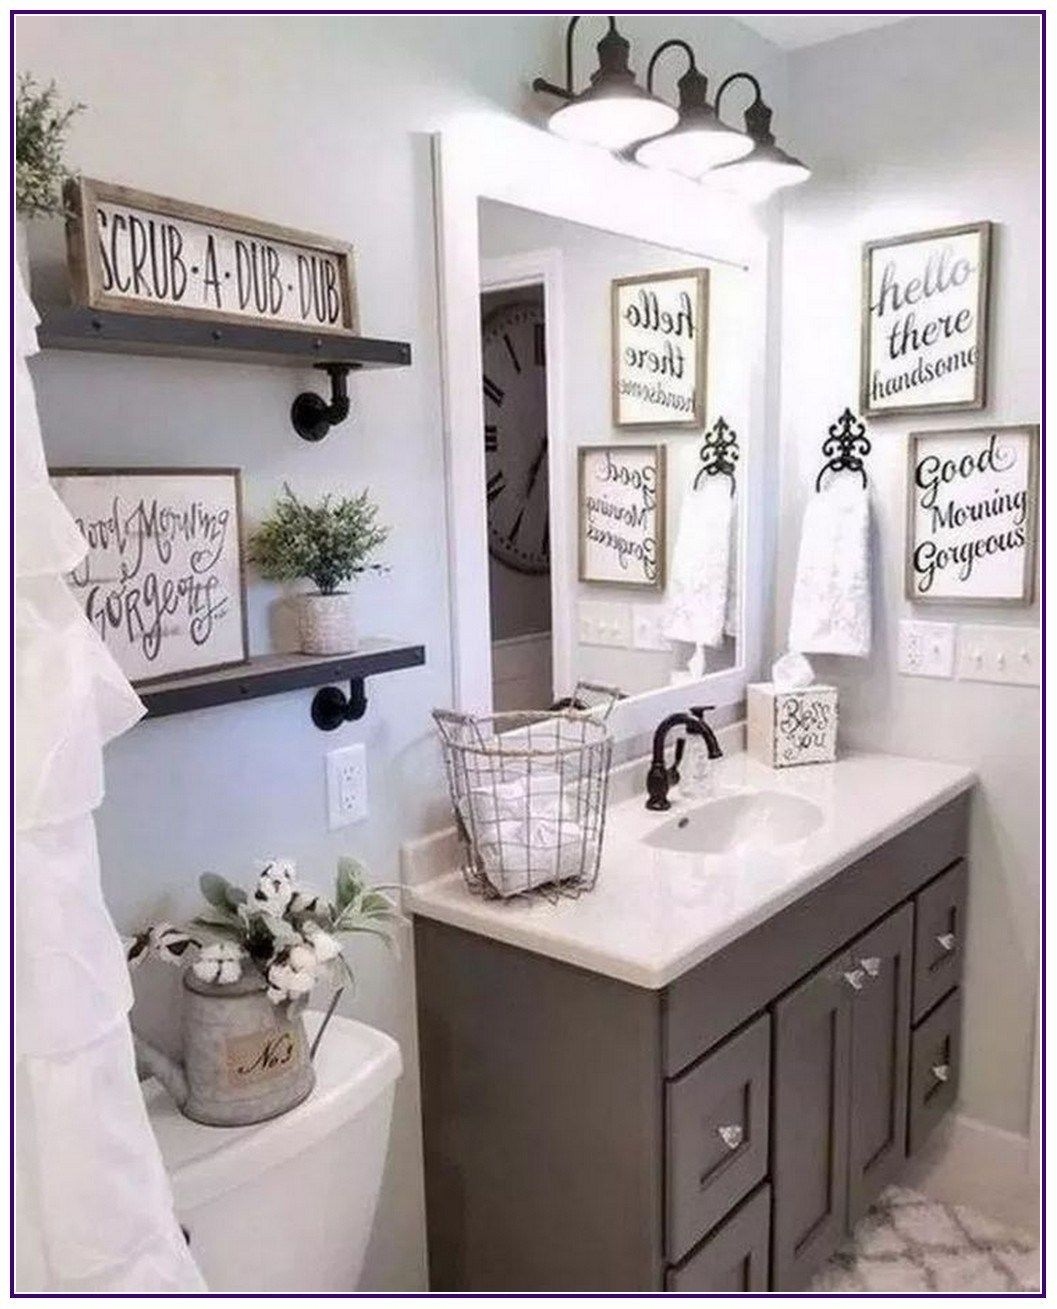 29 The Best Small Bathroom Decor Ideas With Farmhouse Style 00004